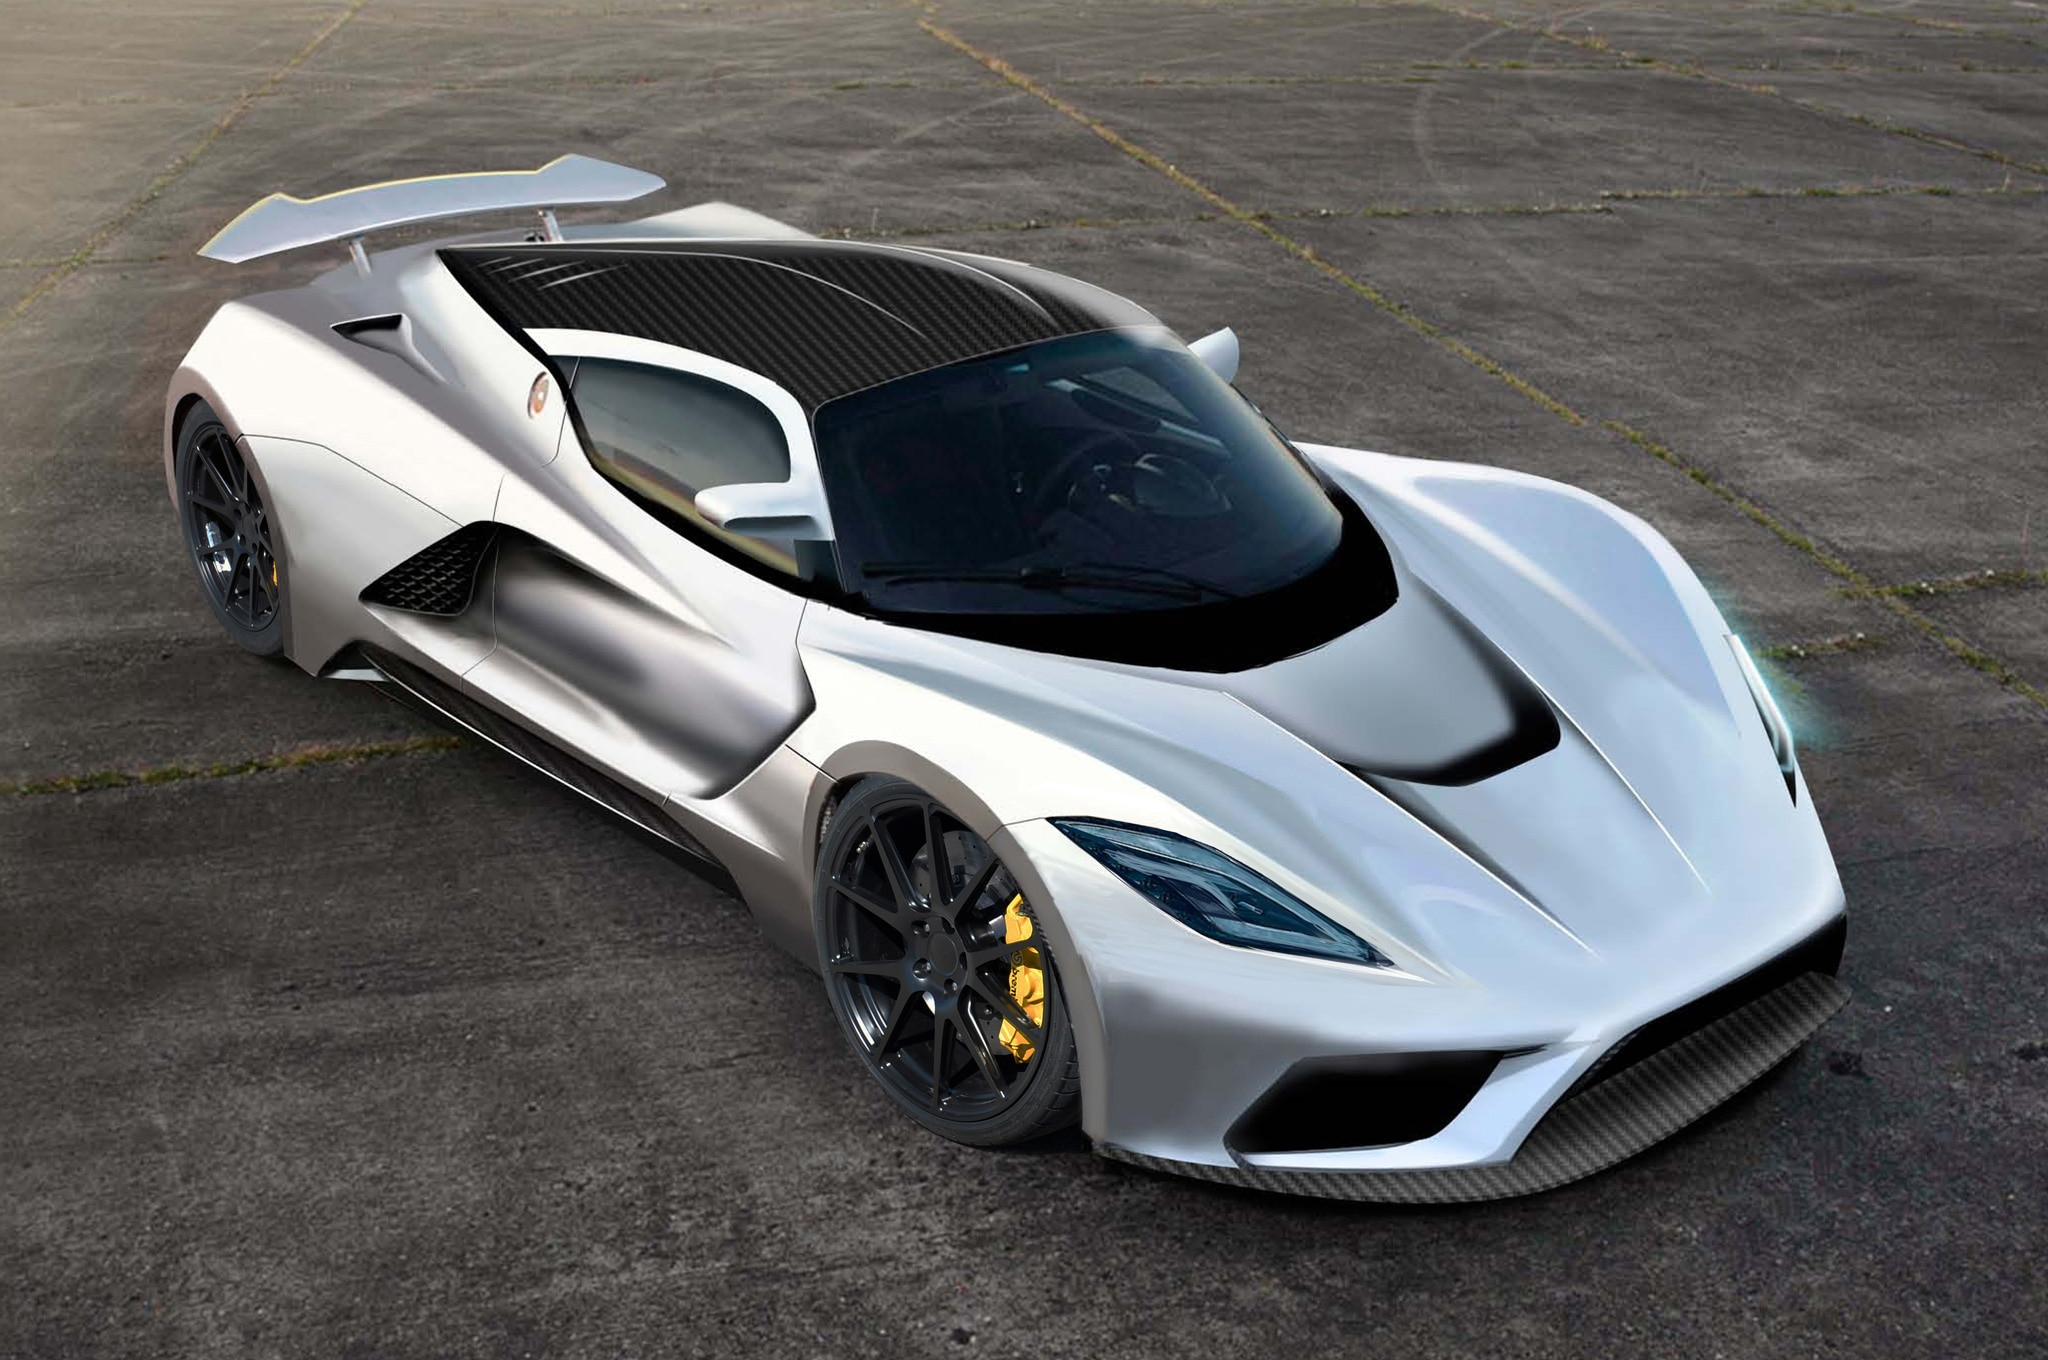 1400 HP Hennessey Venom F5 Confirmed for 2016 290 MPH Possible